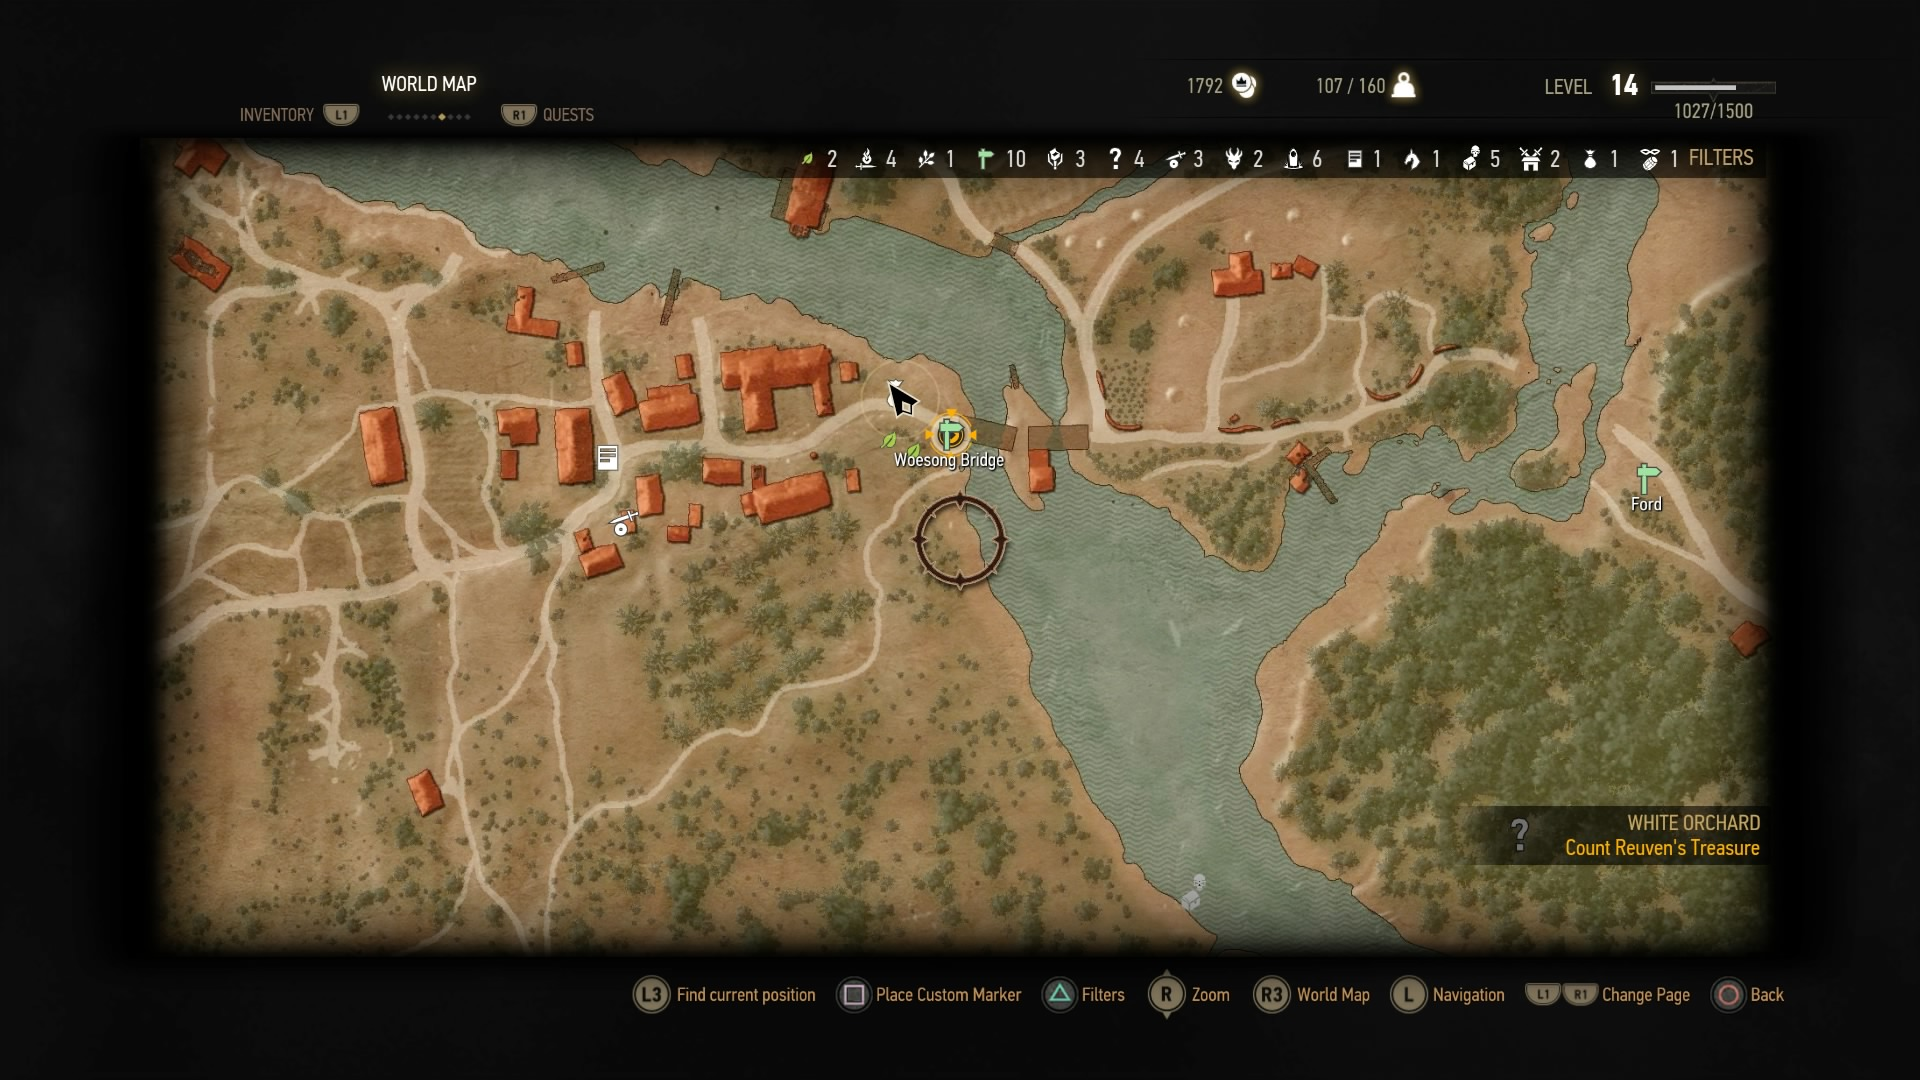 The Witcher 3 [DLC]: Where to find the DLC armor, weapons